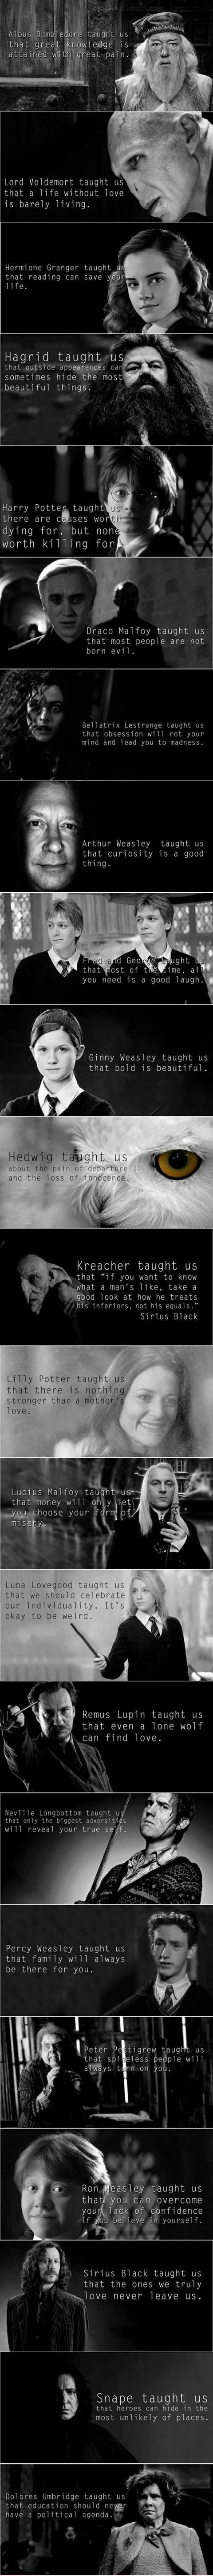 What+the+Harry+Potter+books+thought+us..